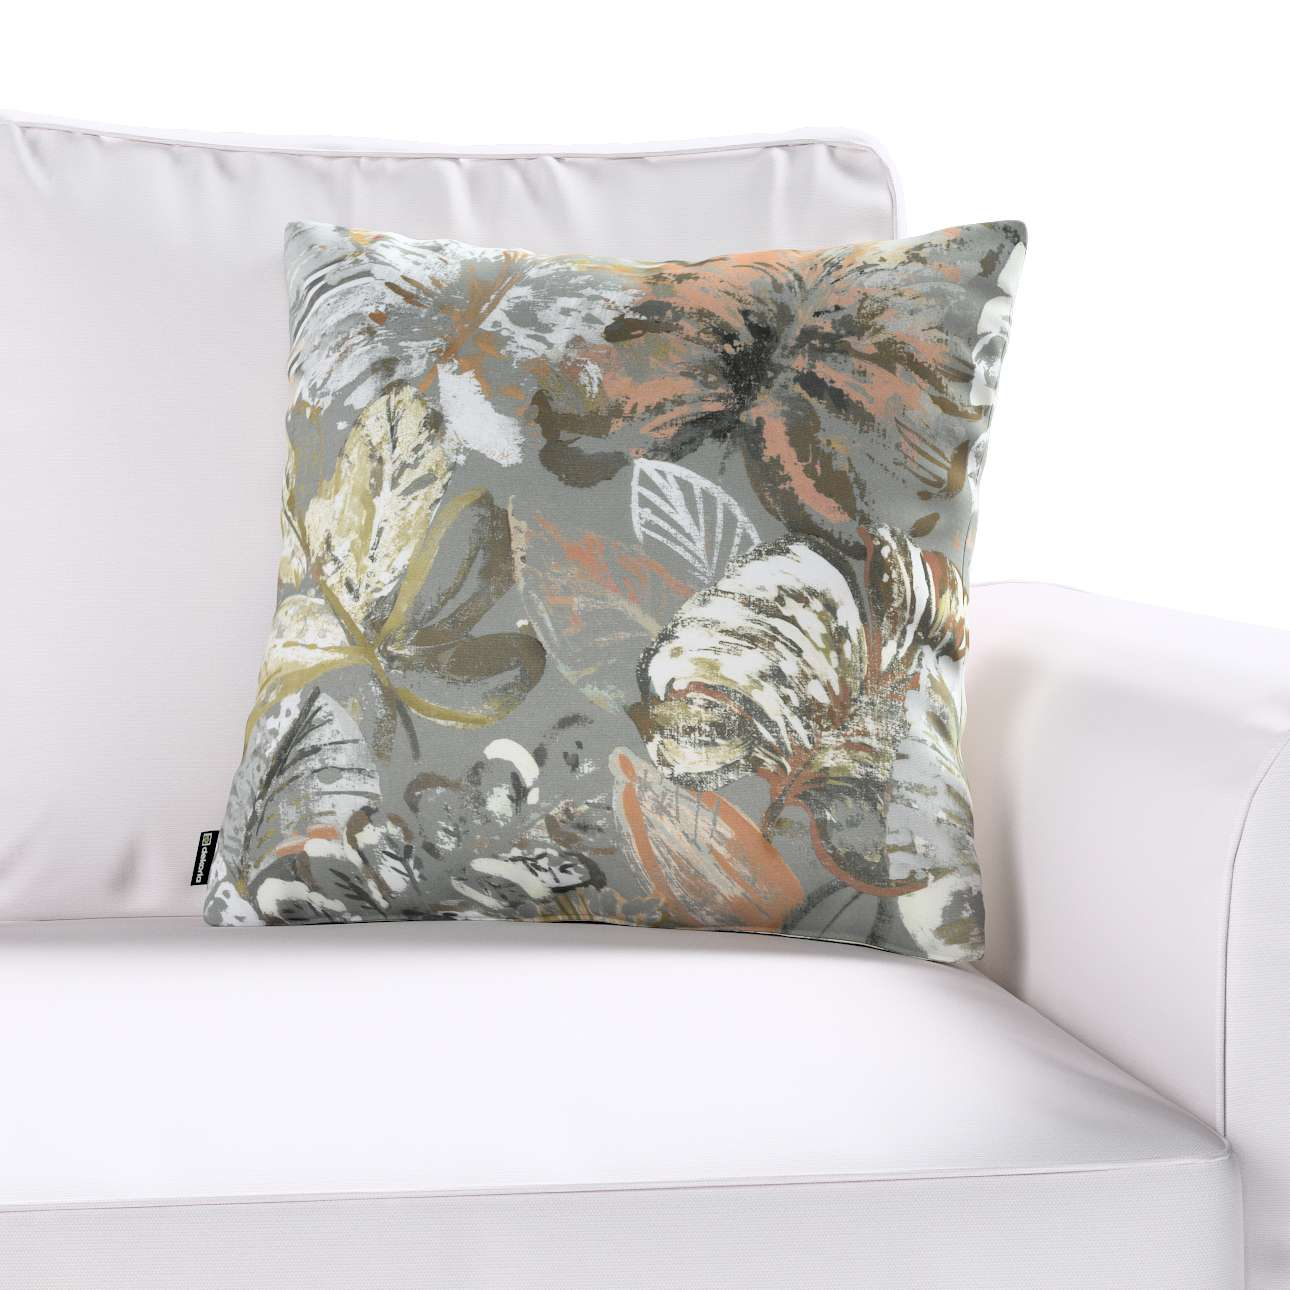 Kinga cushion cover in collection Abigail, fabric: 143-19